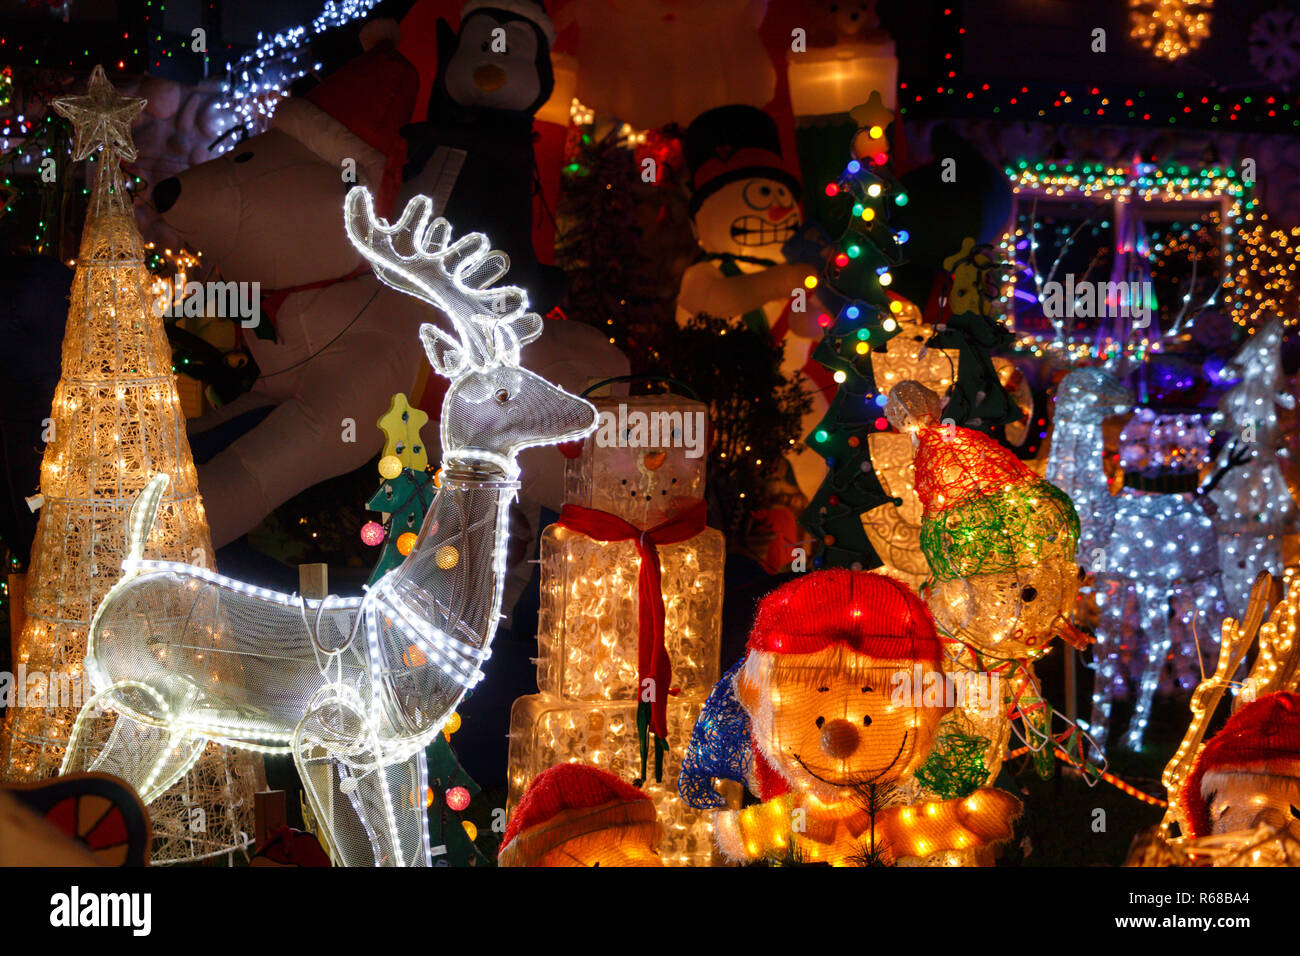 Christmas decorations in front of a house - Stock Image